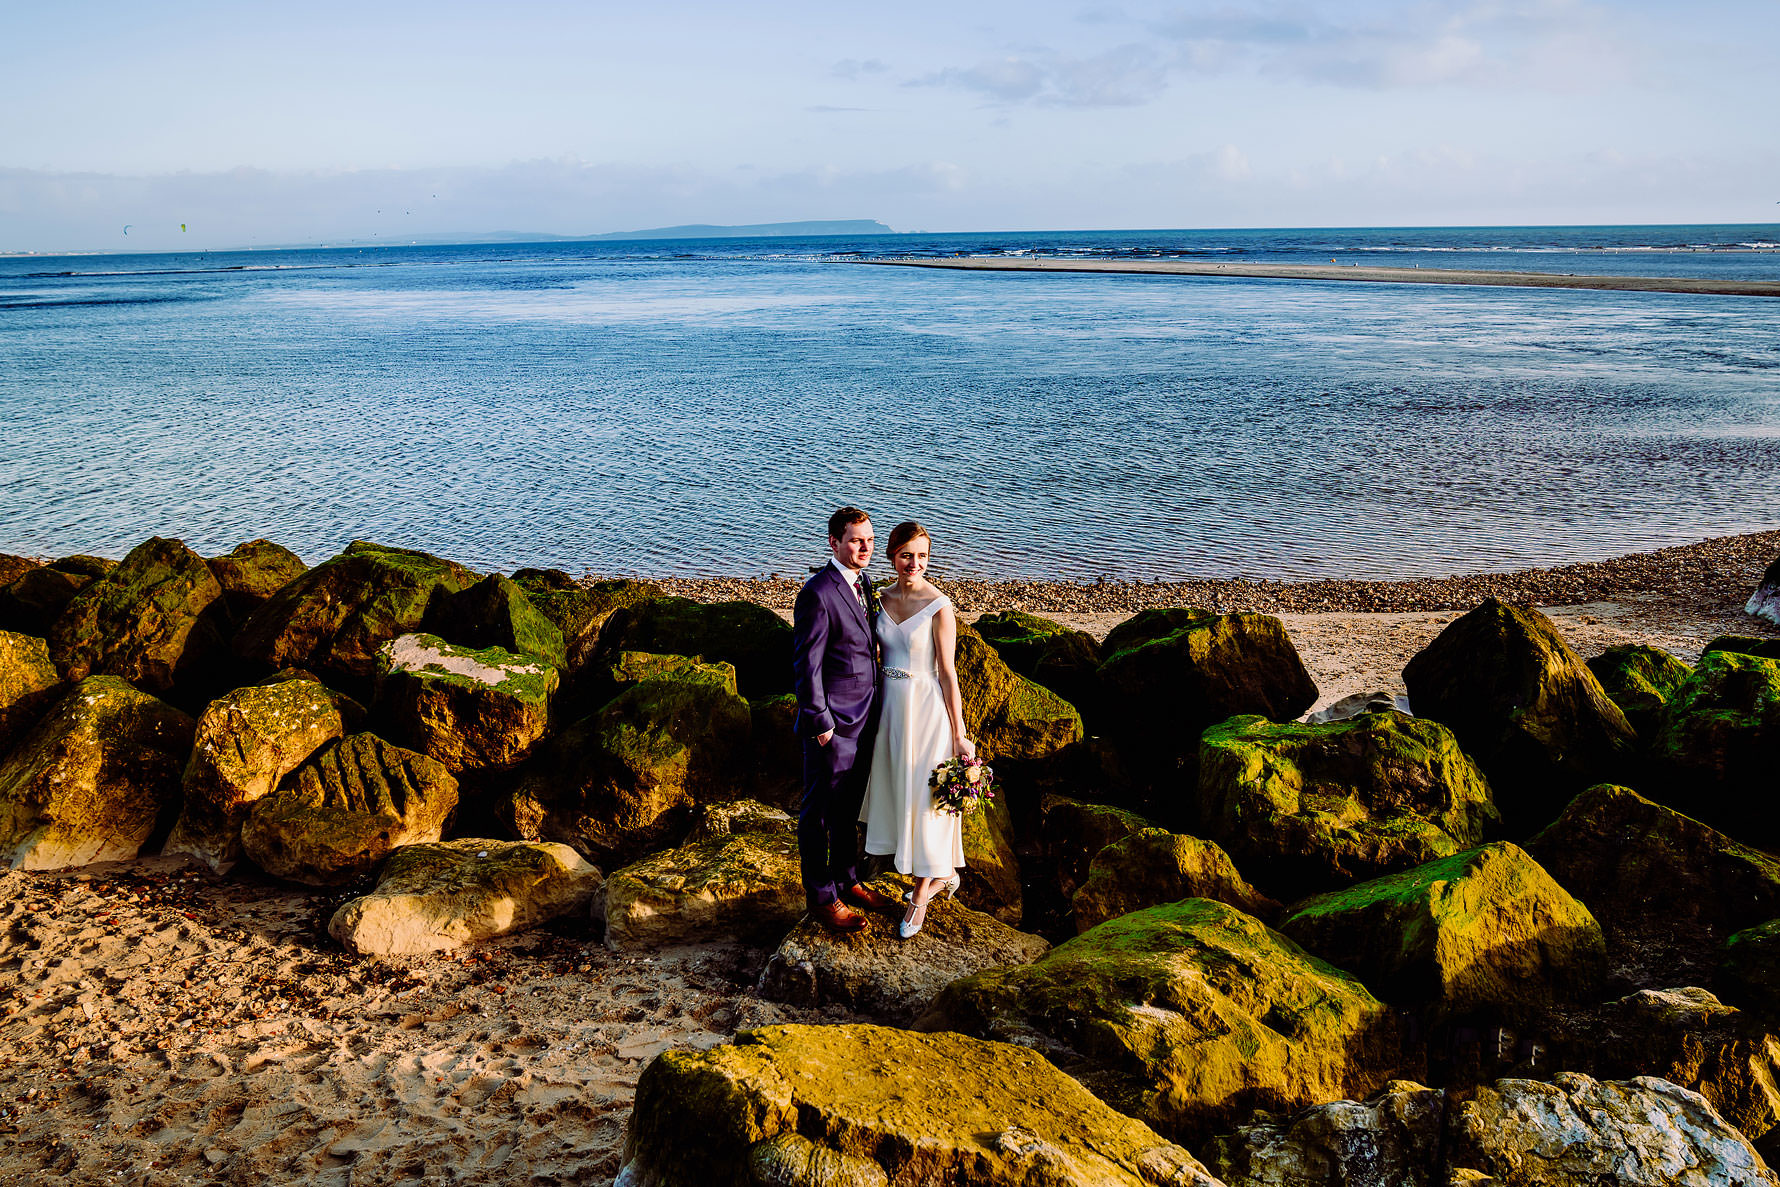 Bournemouth beach wedding photography by Elliot W Patching